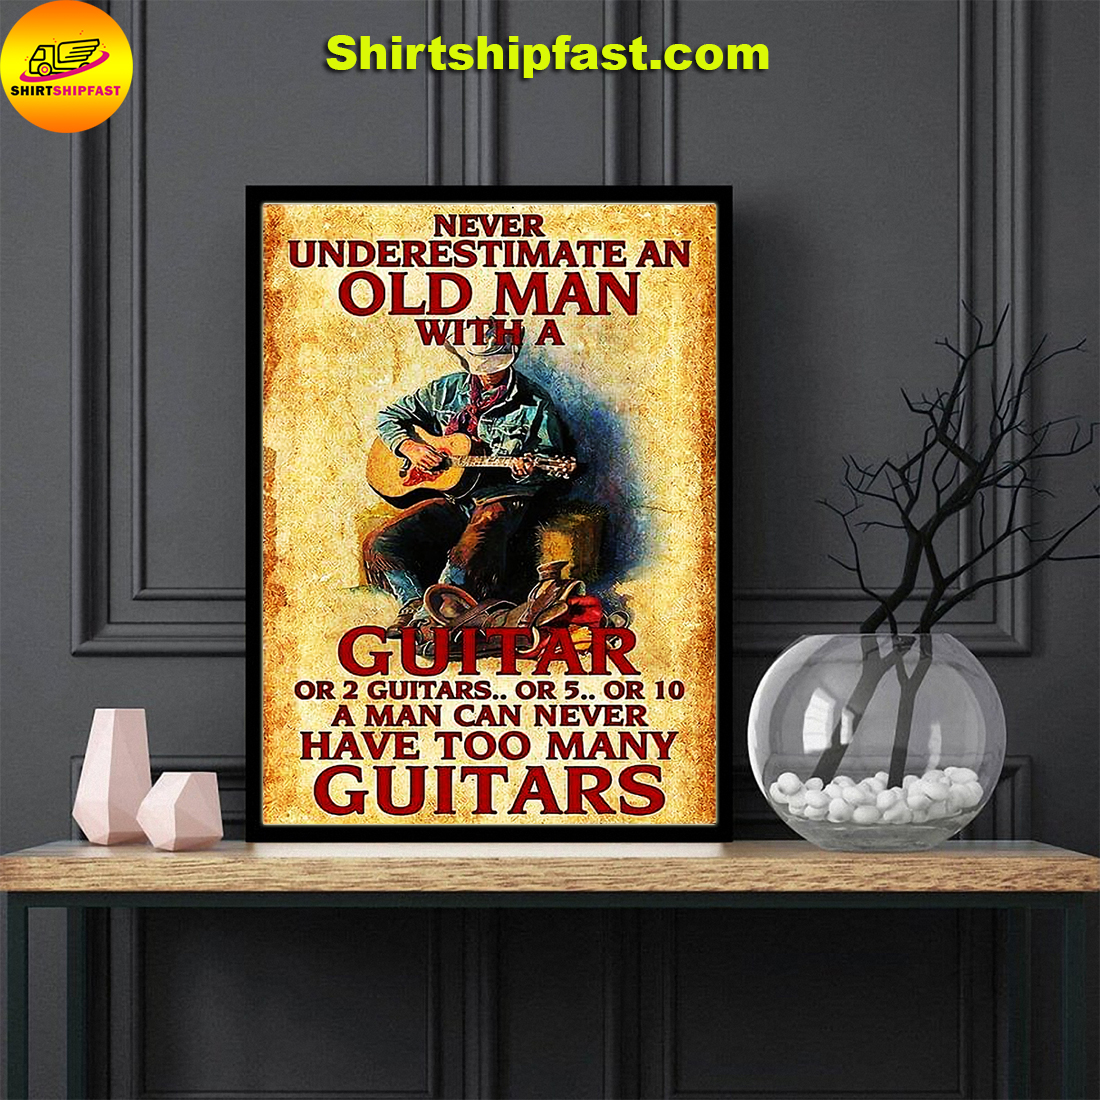 Never underestimate an old man with a guitar or 2 guitars poster - Picture 1